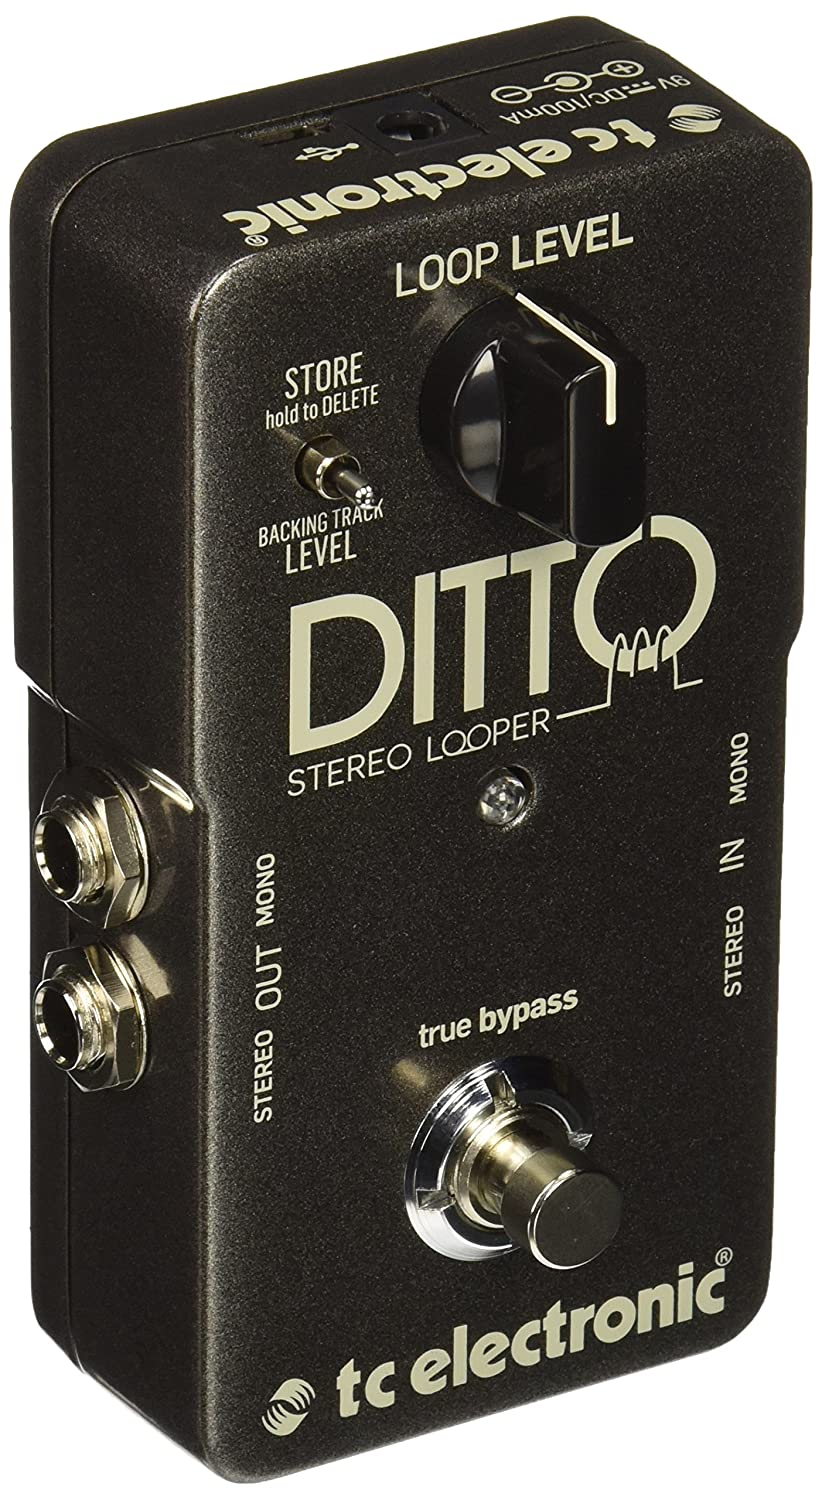 tc electronic ditto stereo looper guitar bass effects pedal free 2day new 5706622011350 ebay. Black Bedroom Furniture Sets. Home Design Ideas